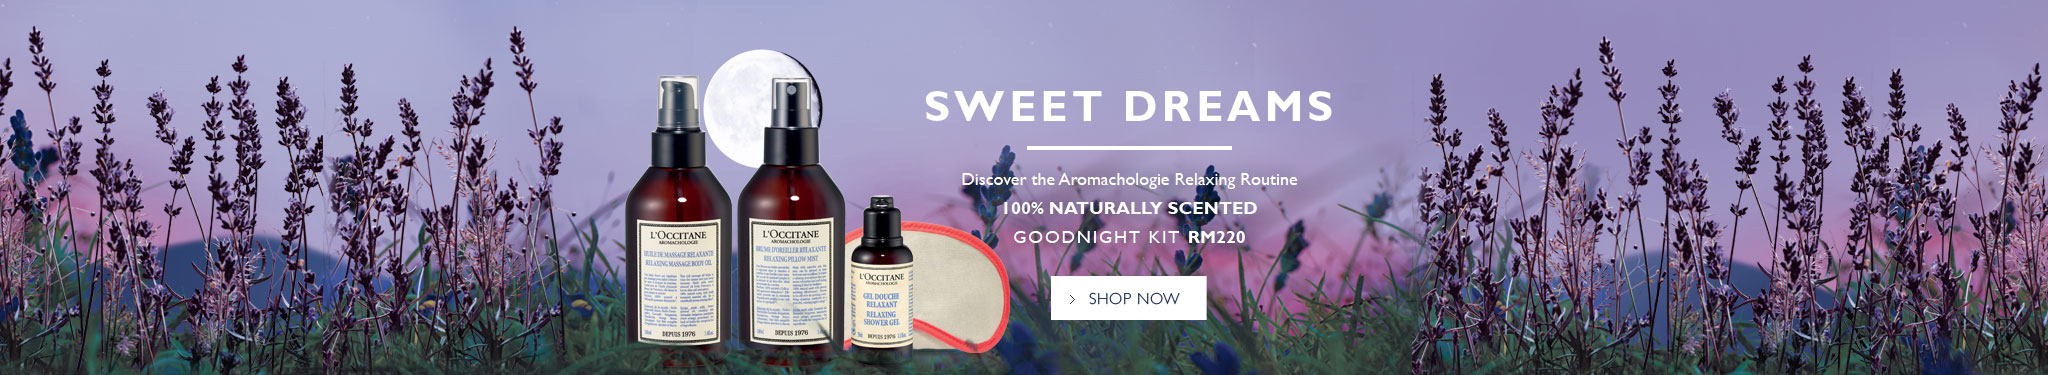 Sweet Dreams with aromachologie